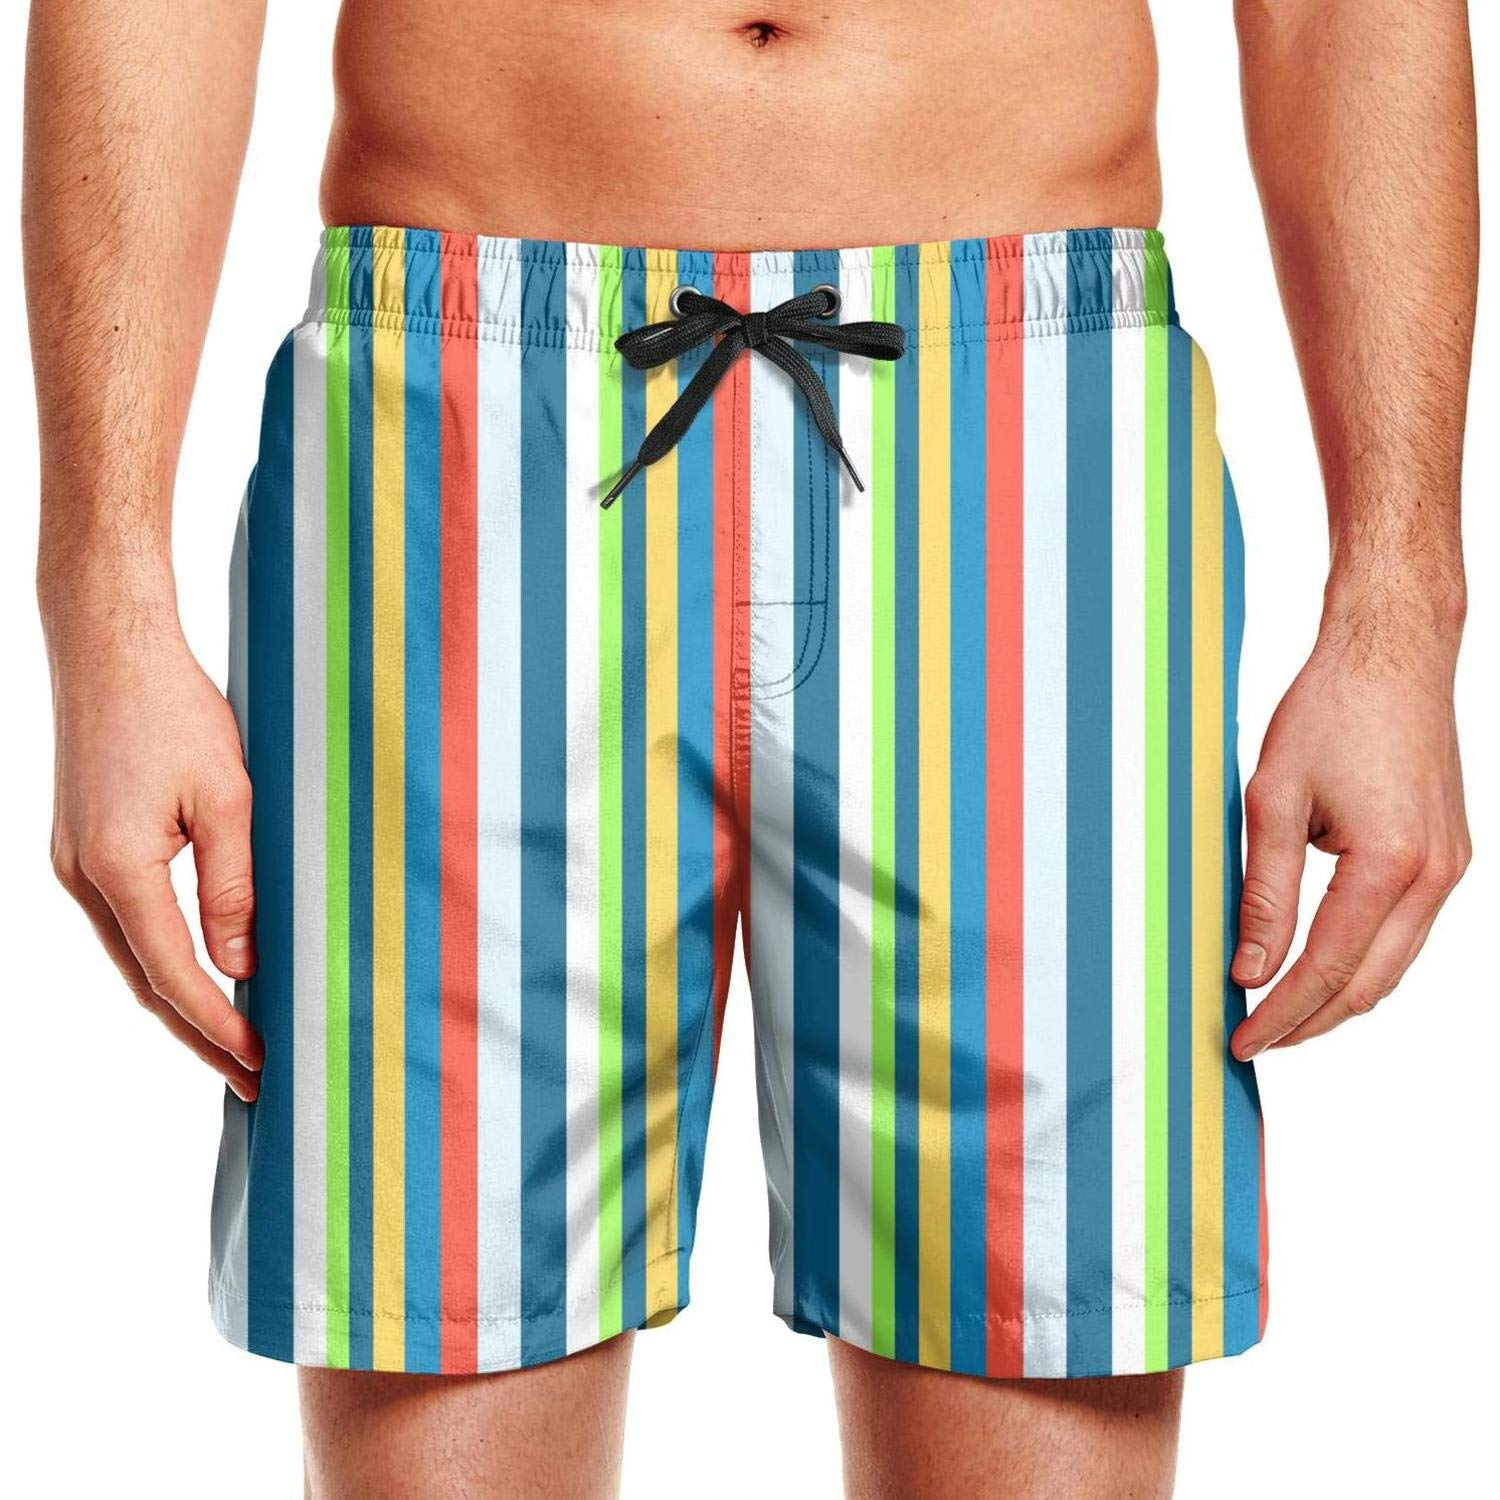 HOTZX Mens Casual Slim Fit Quick Dry Swimming Trunks Short-Stripe Style Beach Shorts